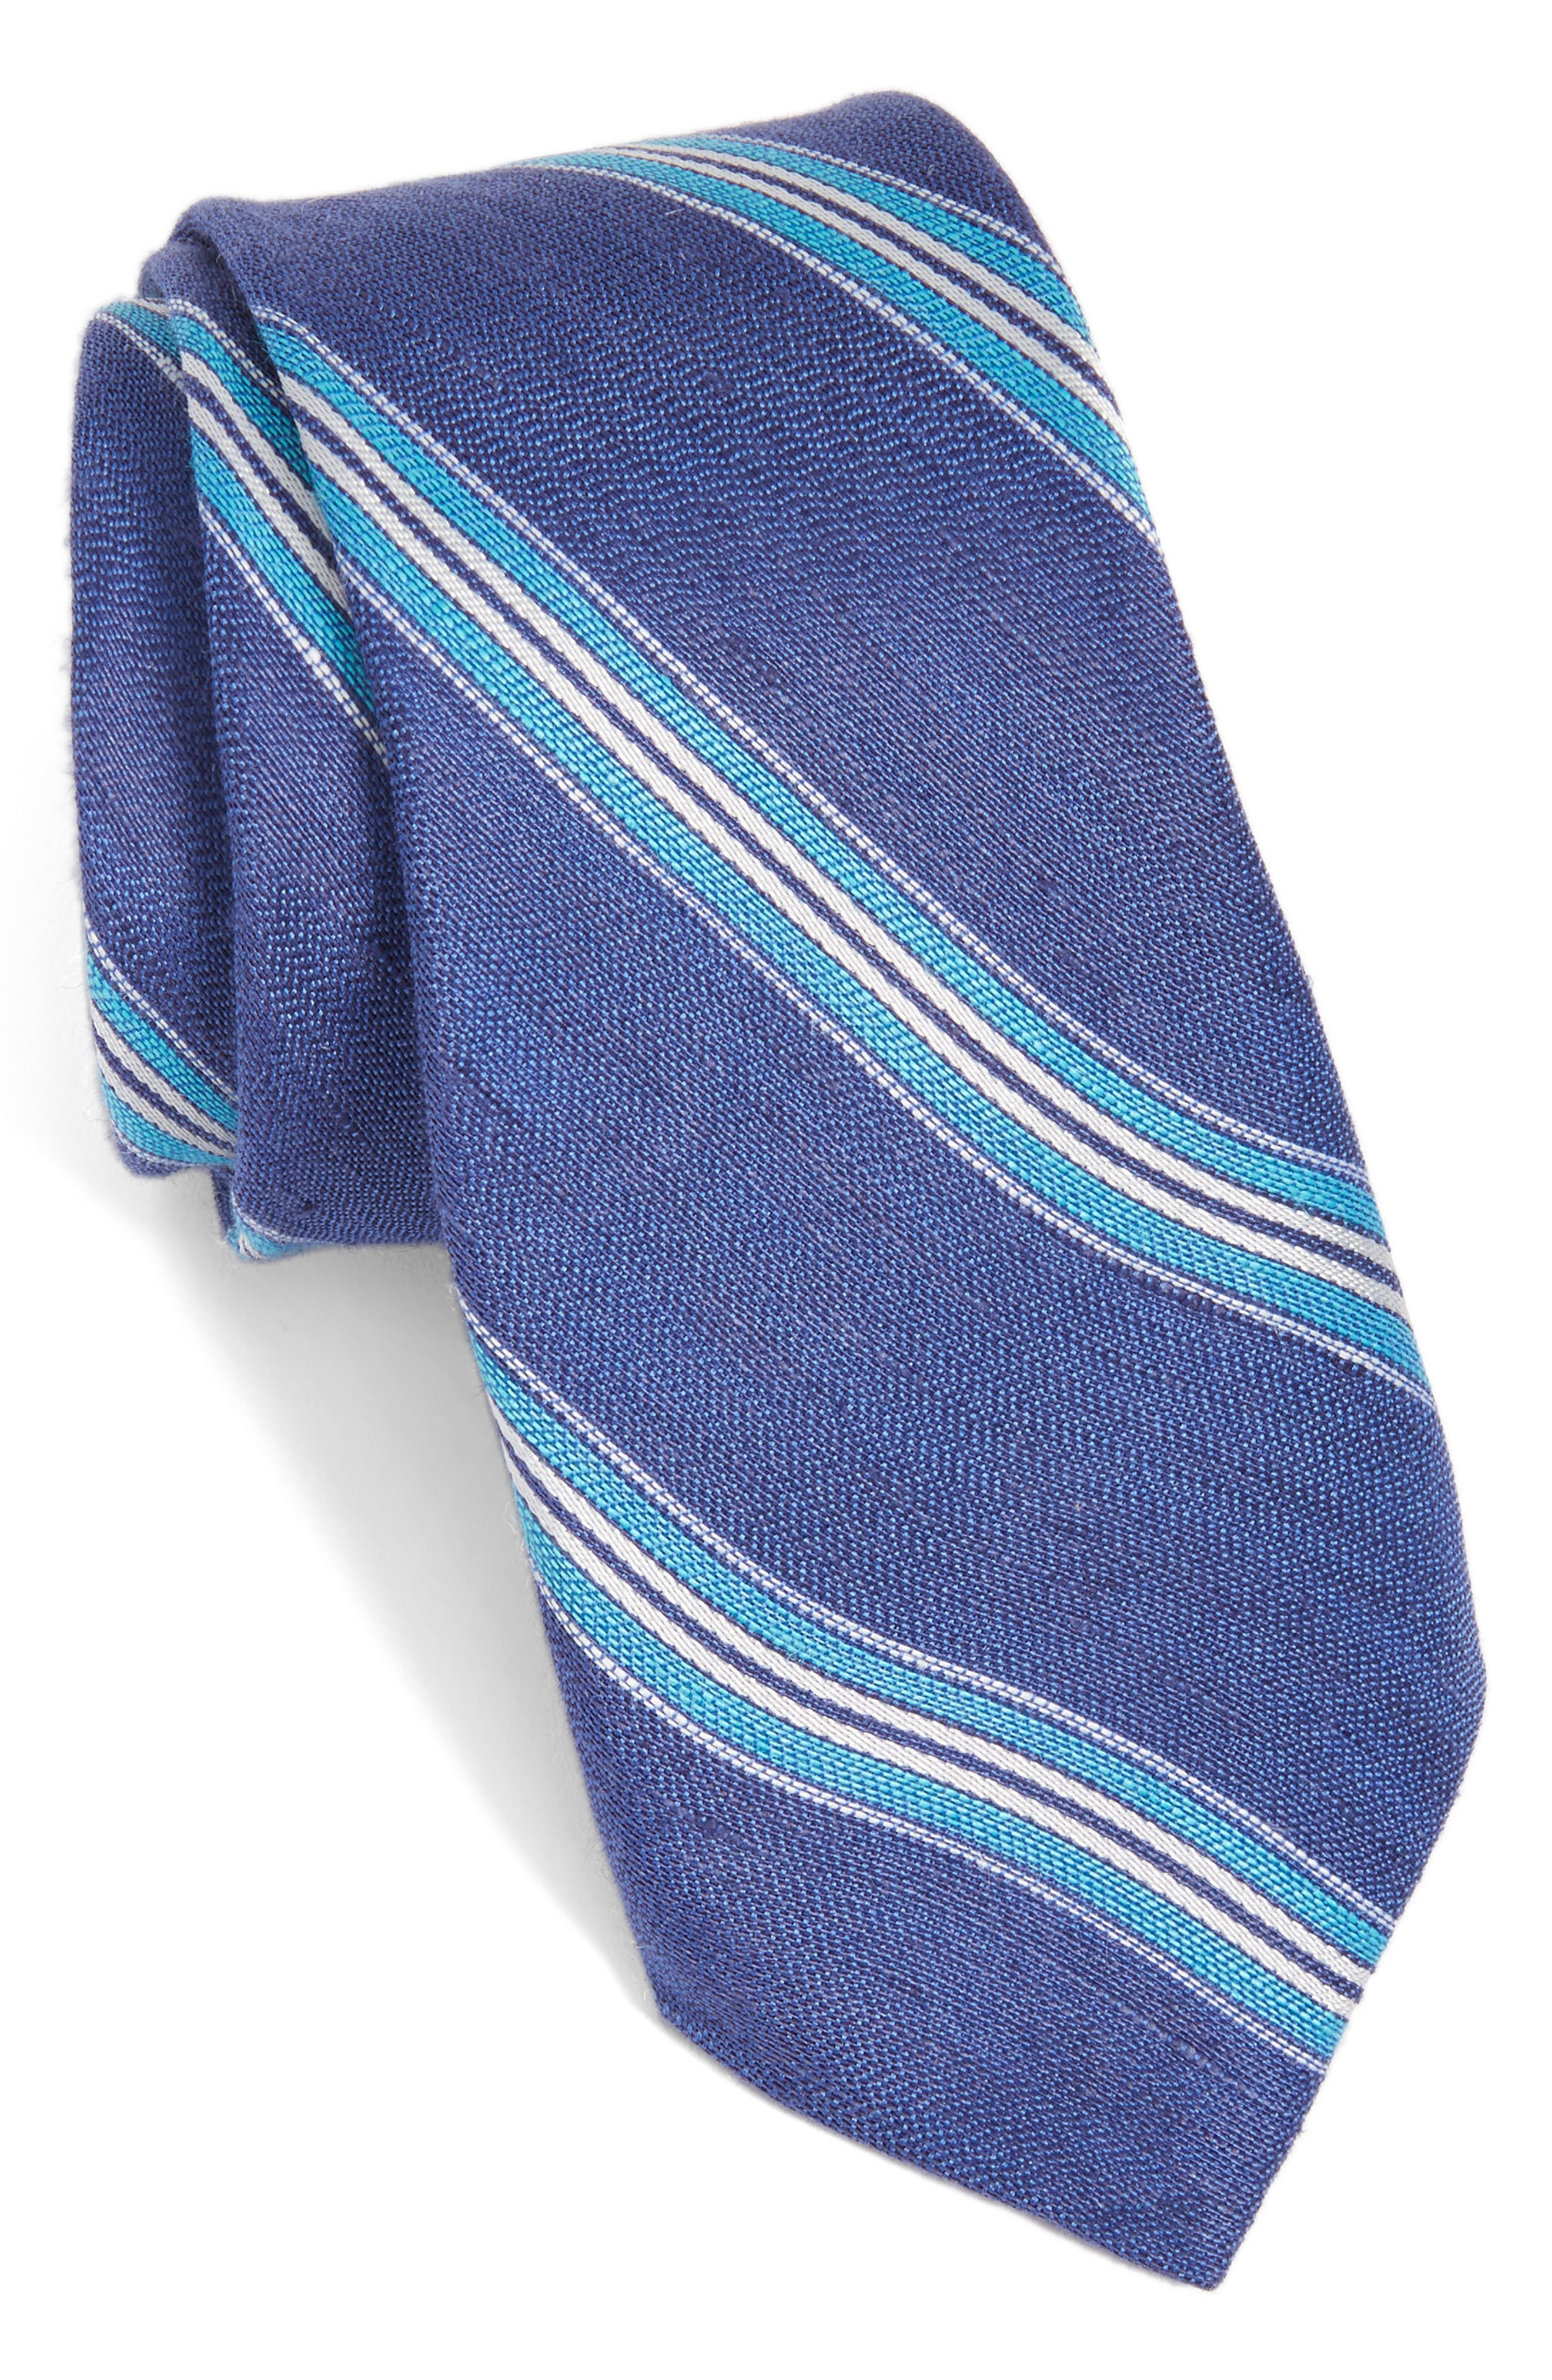 Main Image - Ted Baker London Stripe Linen & Silk Tie